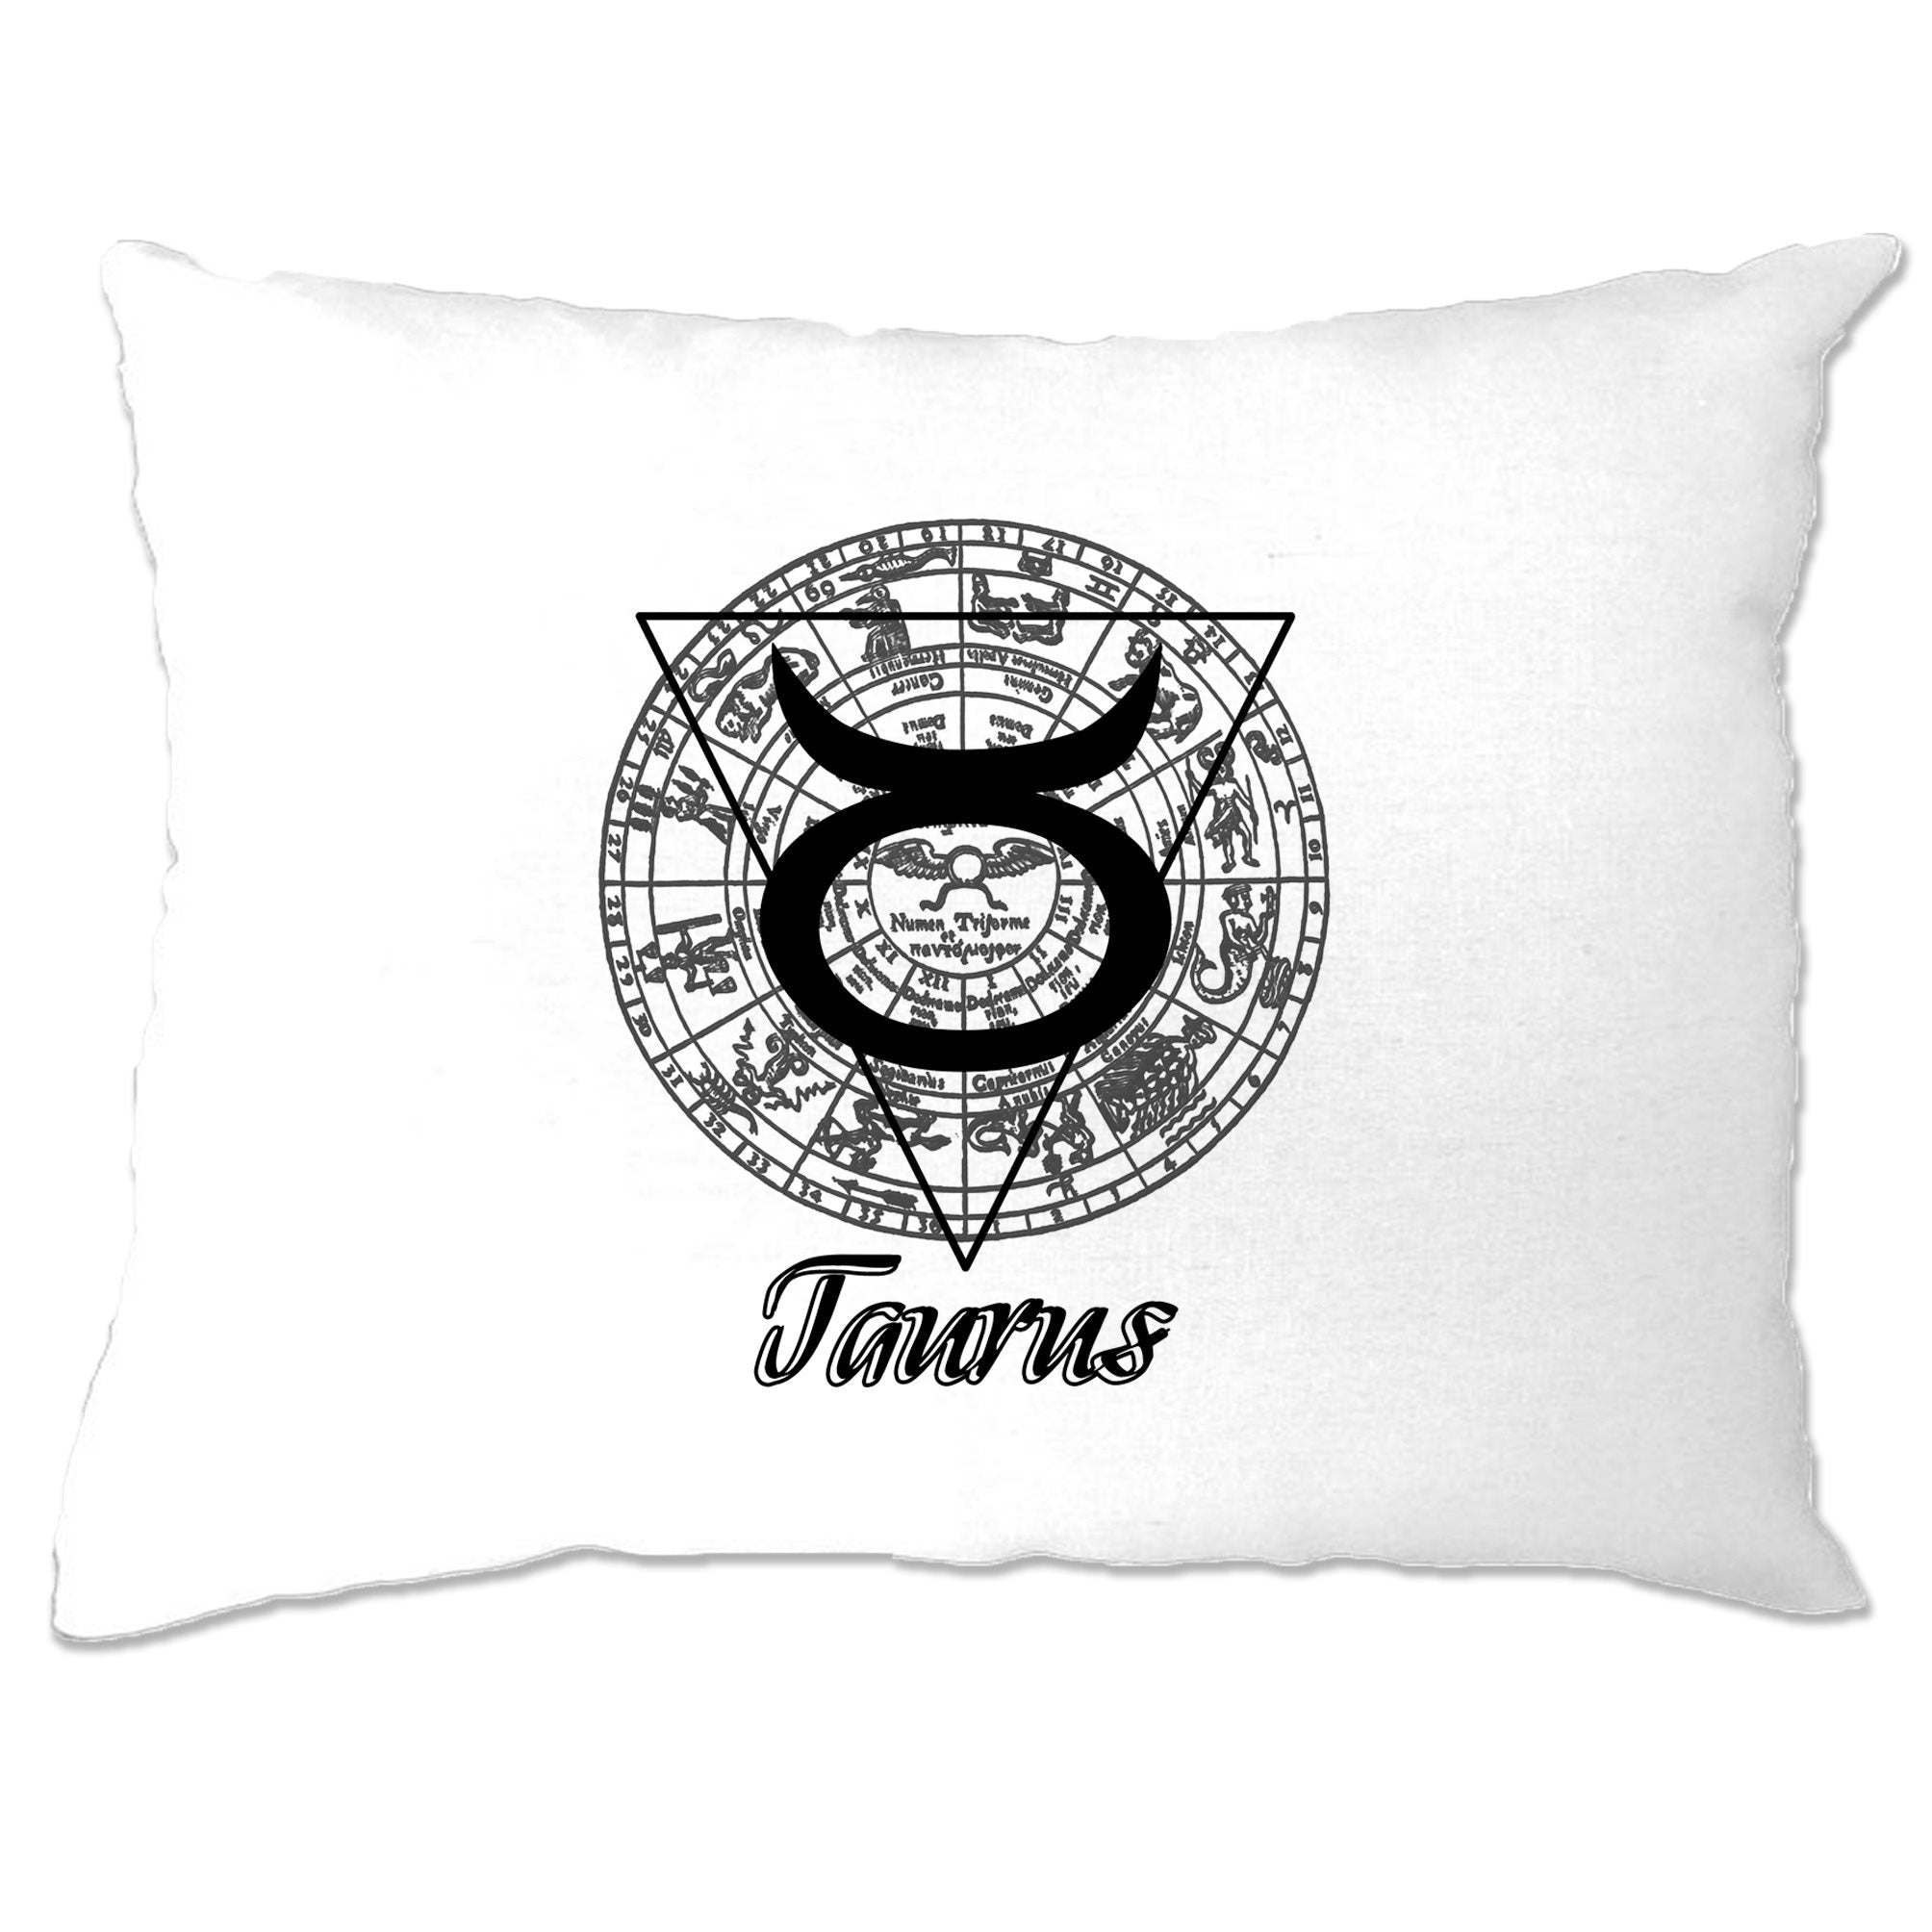 Horoscope Pillow Case Taurus Zodiac Star Sign Birthday